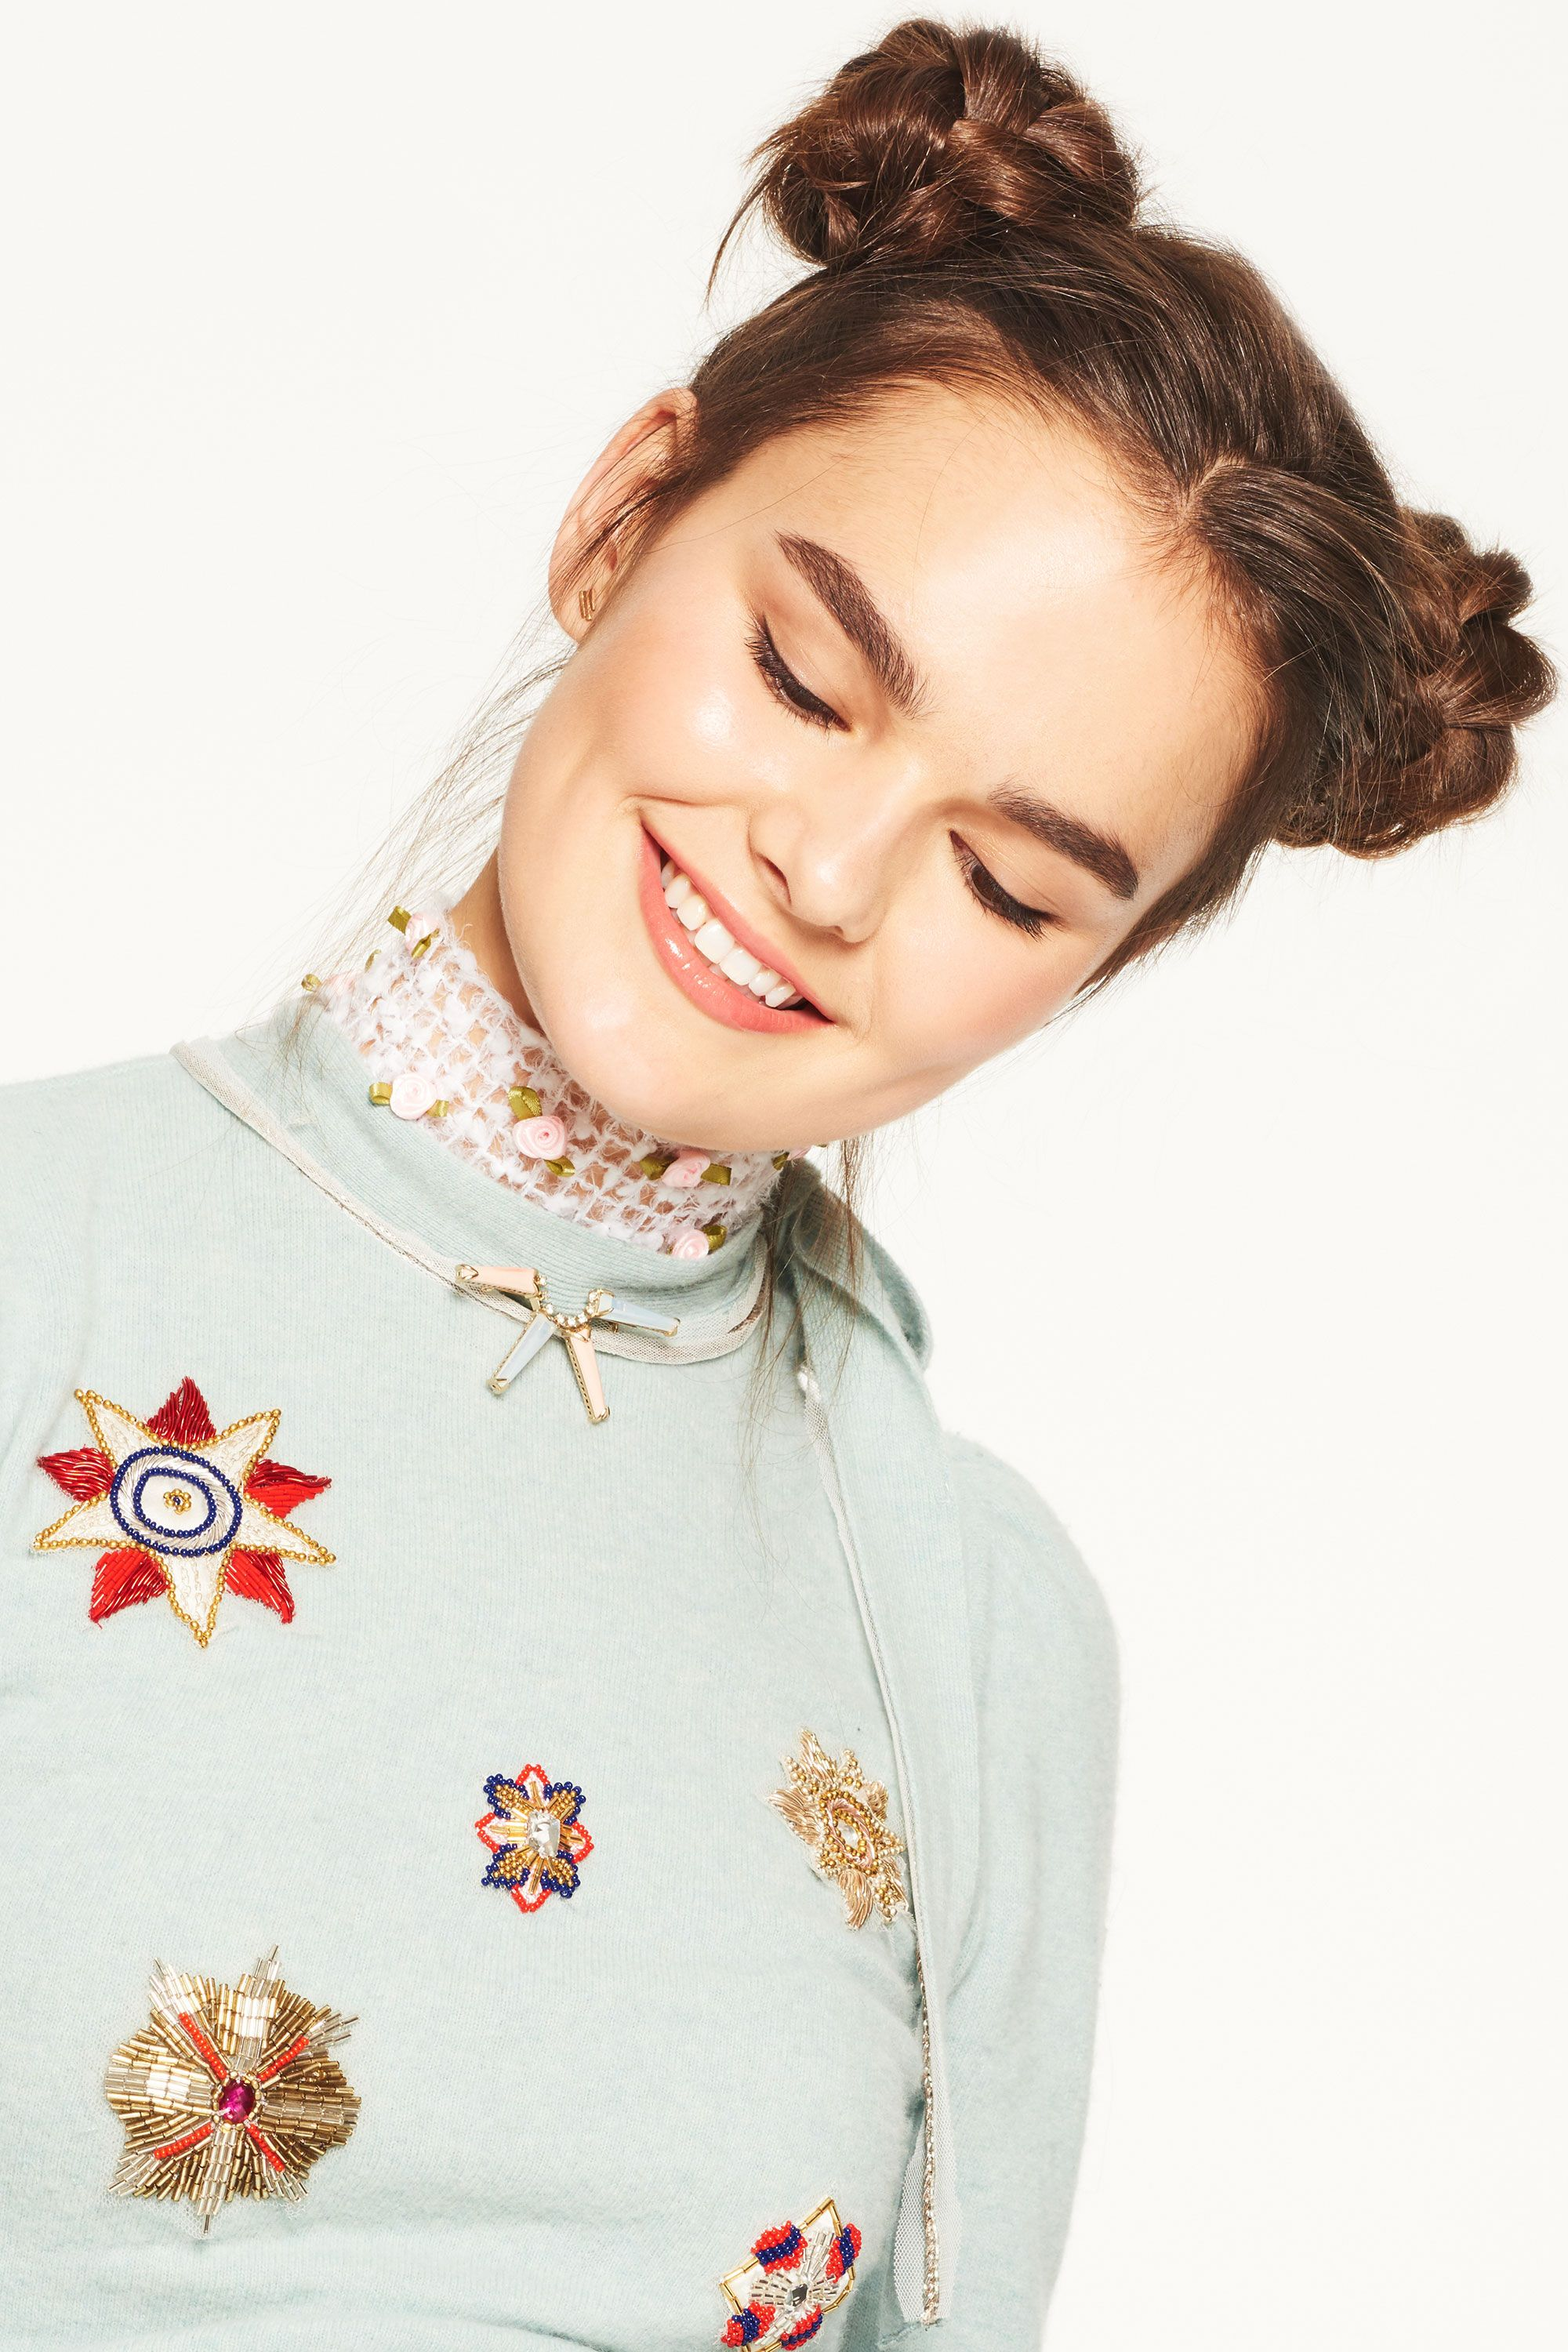 <p>A.k.a. —&nbsp&#x3B;not your grandma's&nbsp&#x3B;milkmaid braids.</p>